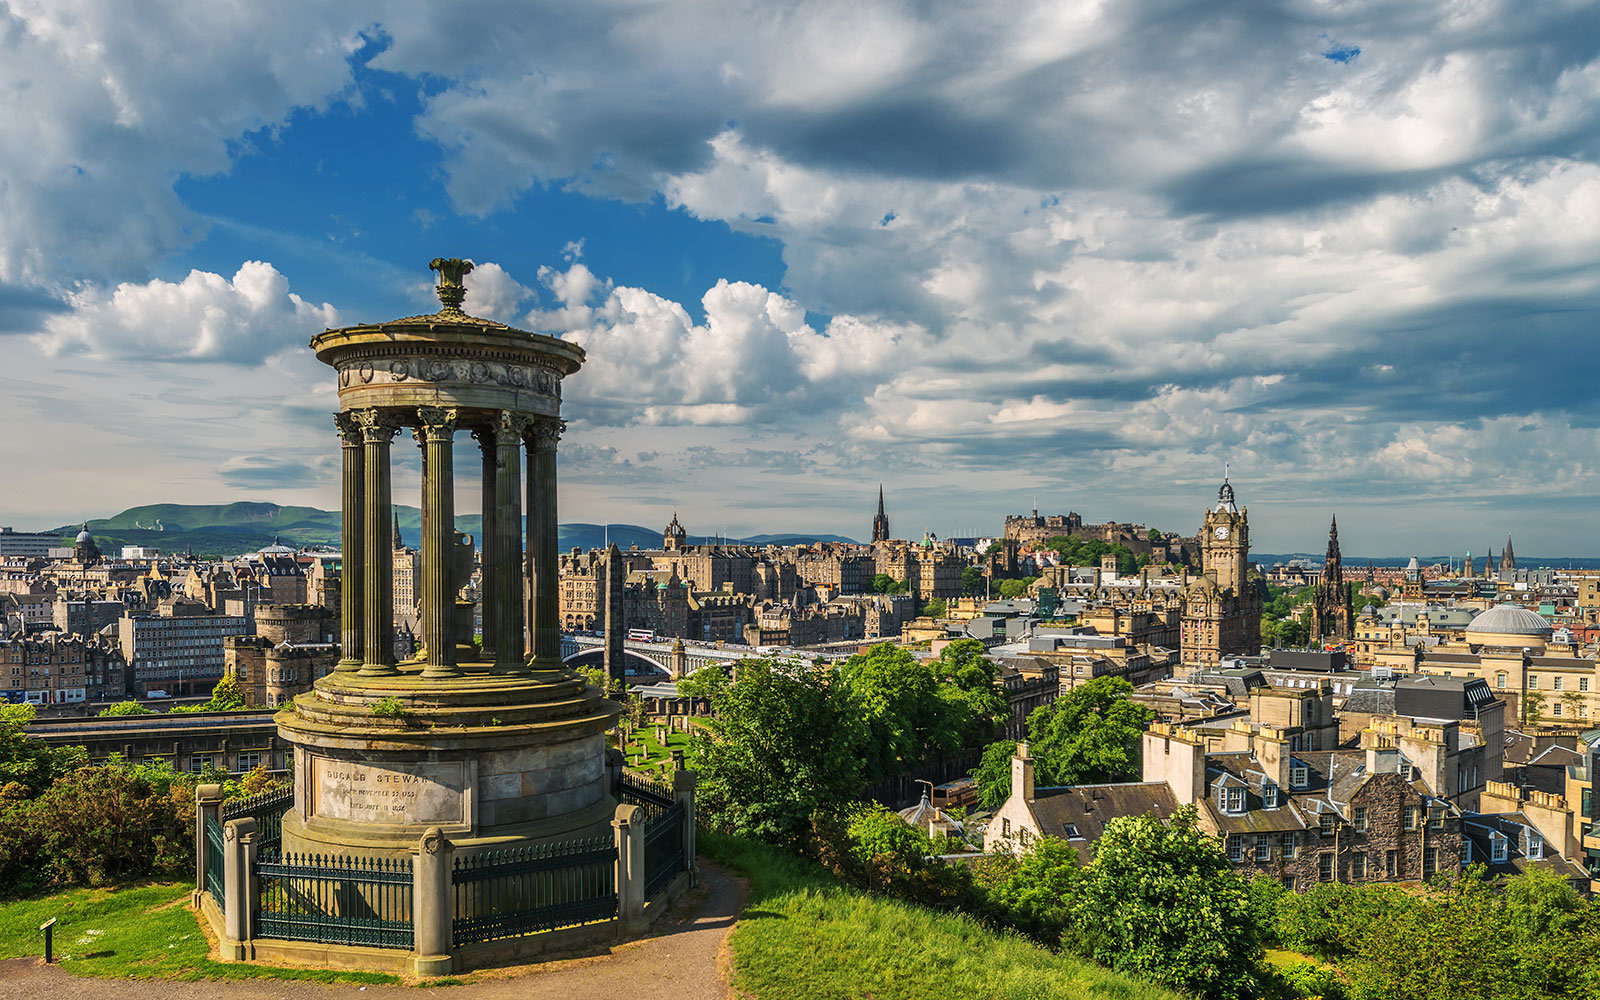 Edinburgh seen from Calton Hill.